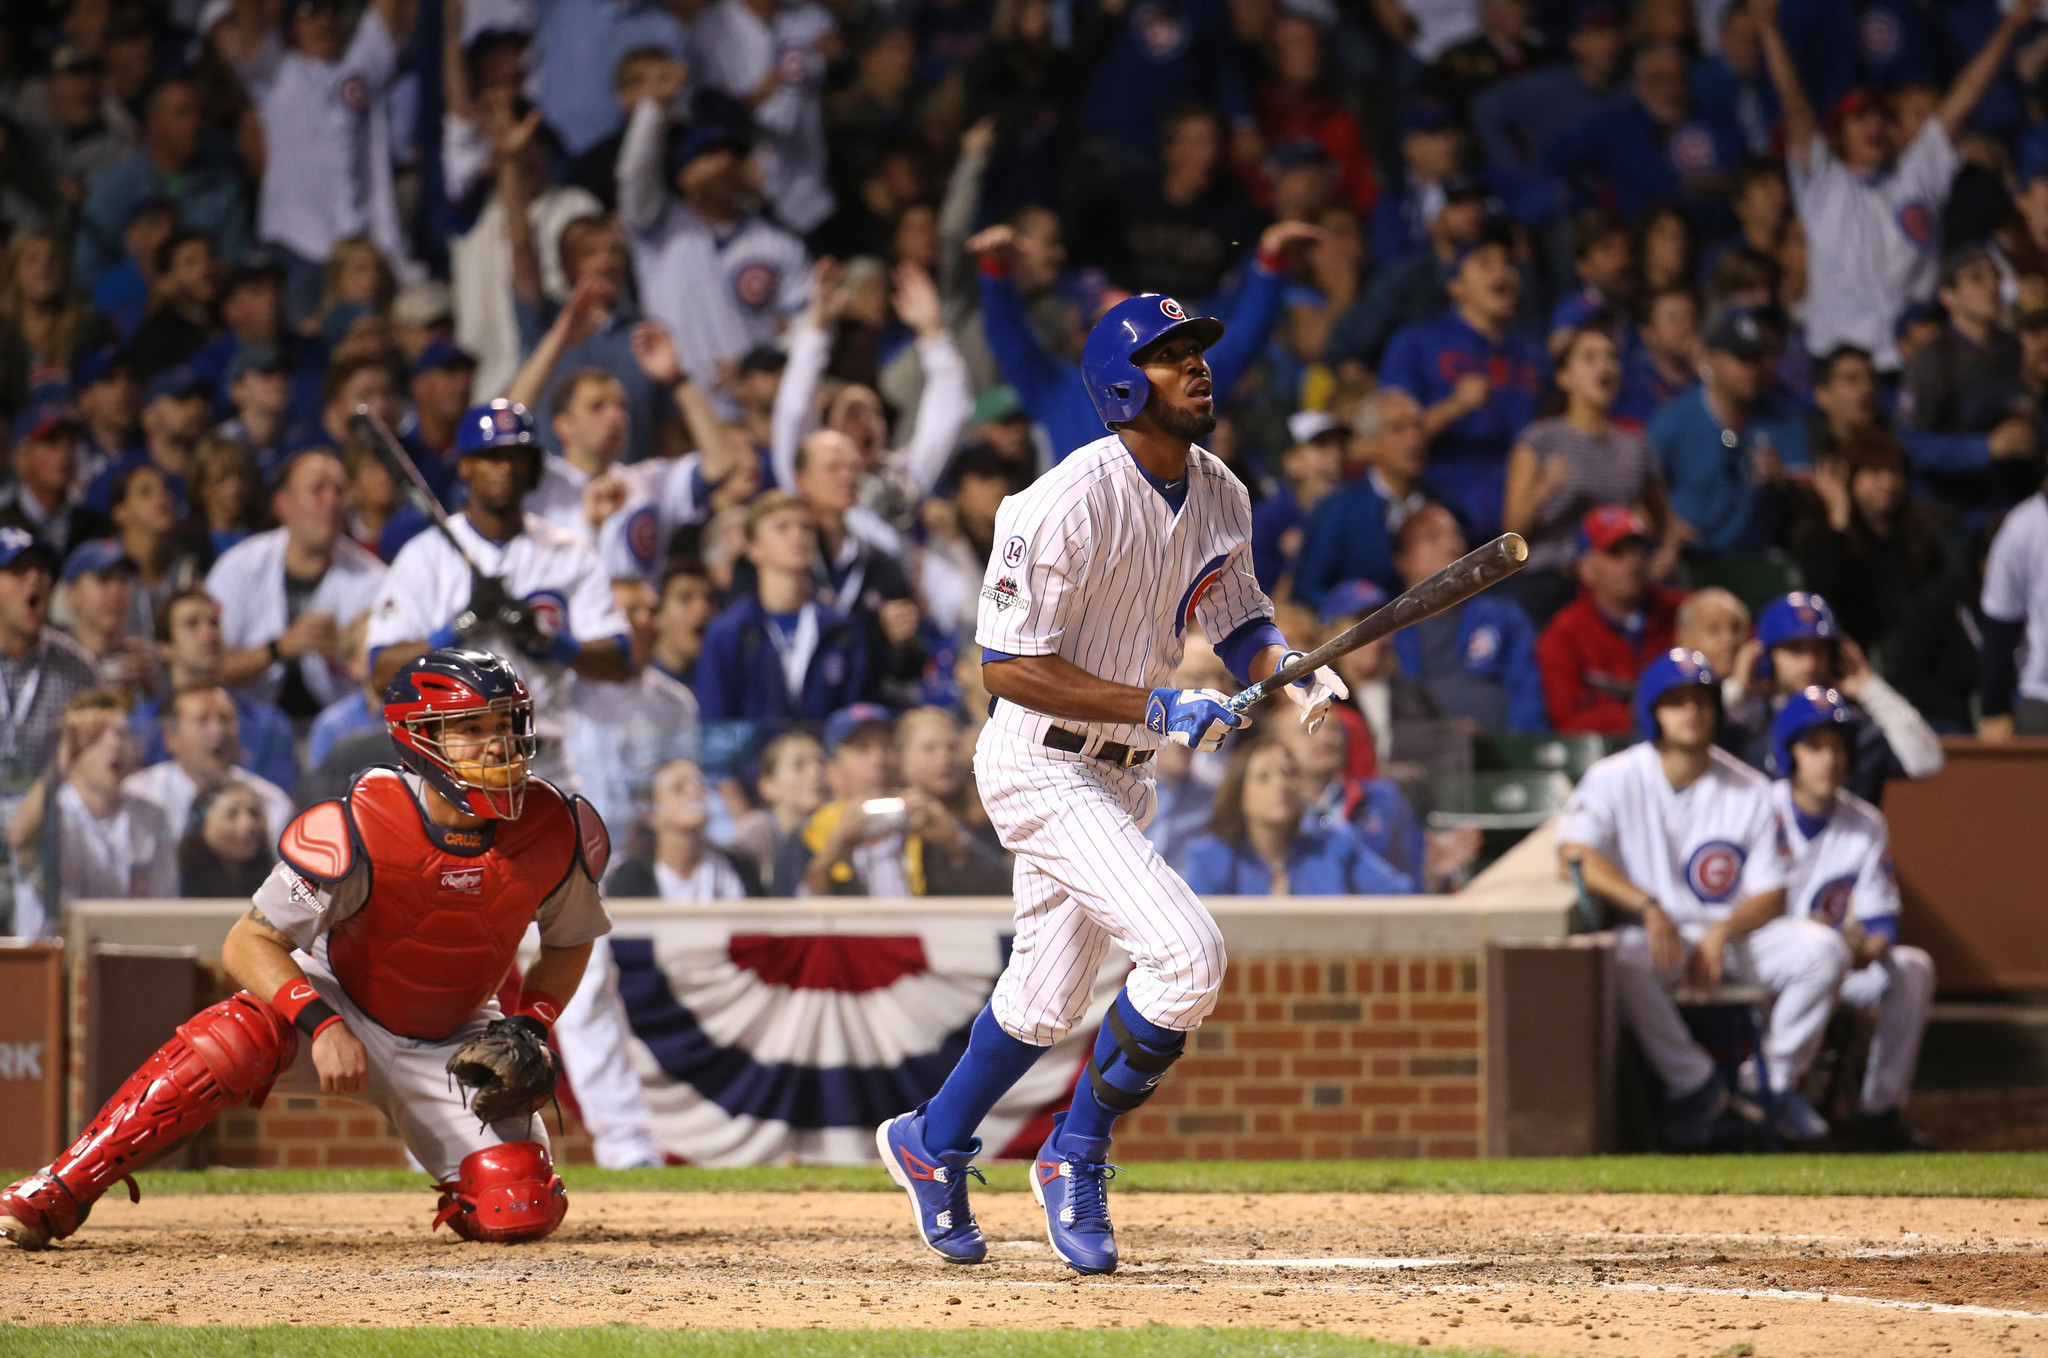 68101ebcbeaad5 ... amateur scouting department will be delighted once Dexter Fowlers  agreement with the Baltimore Dexter Fowler Signed Game-Used Pair of Cubs  Jordan Cleats ...